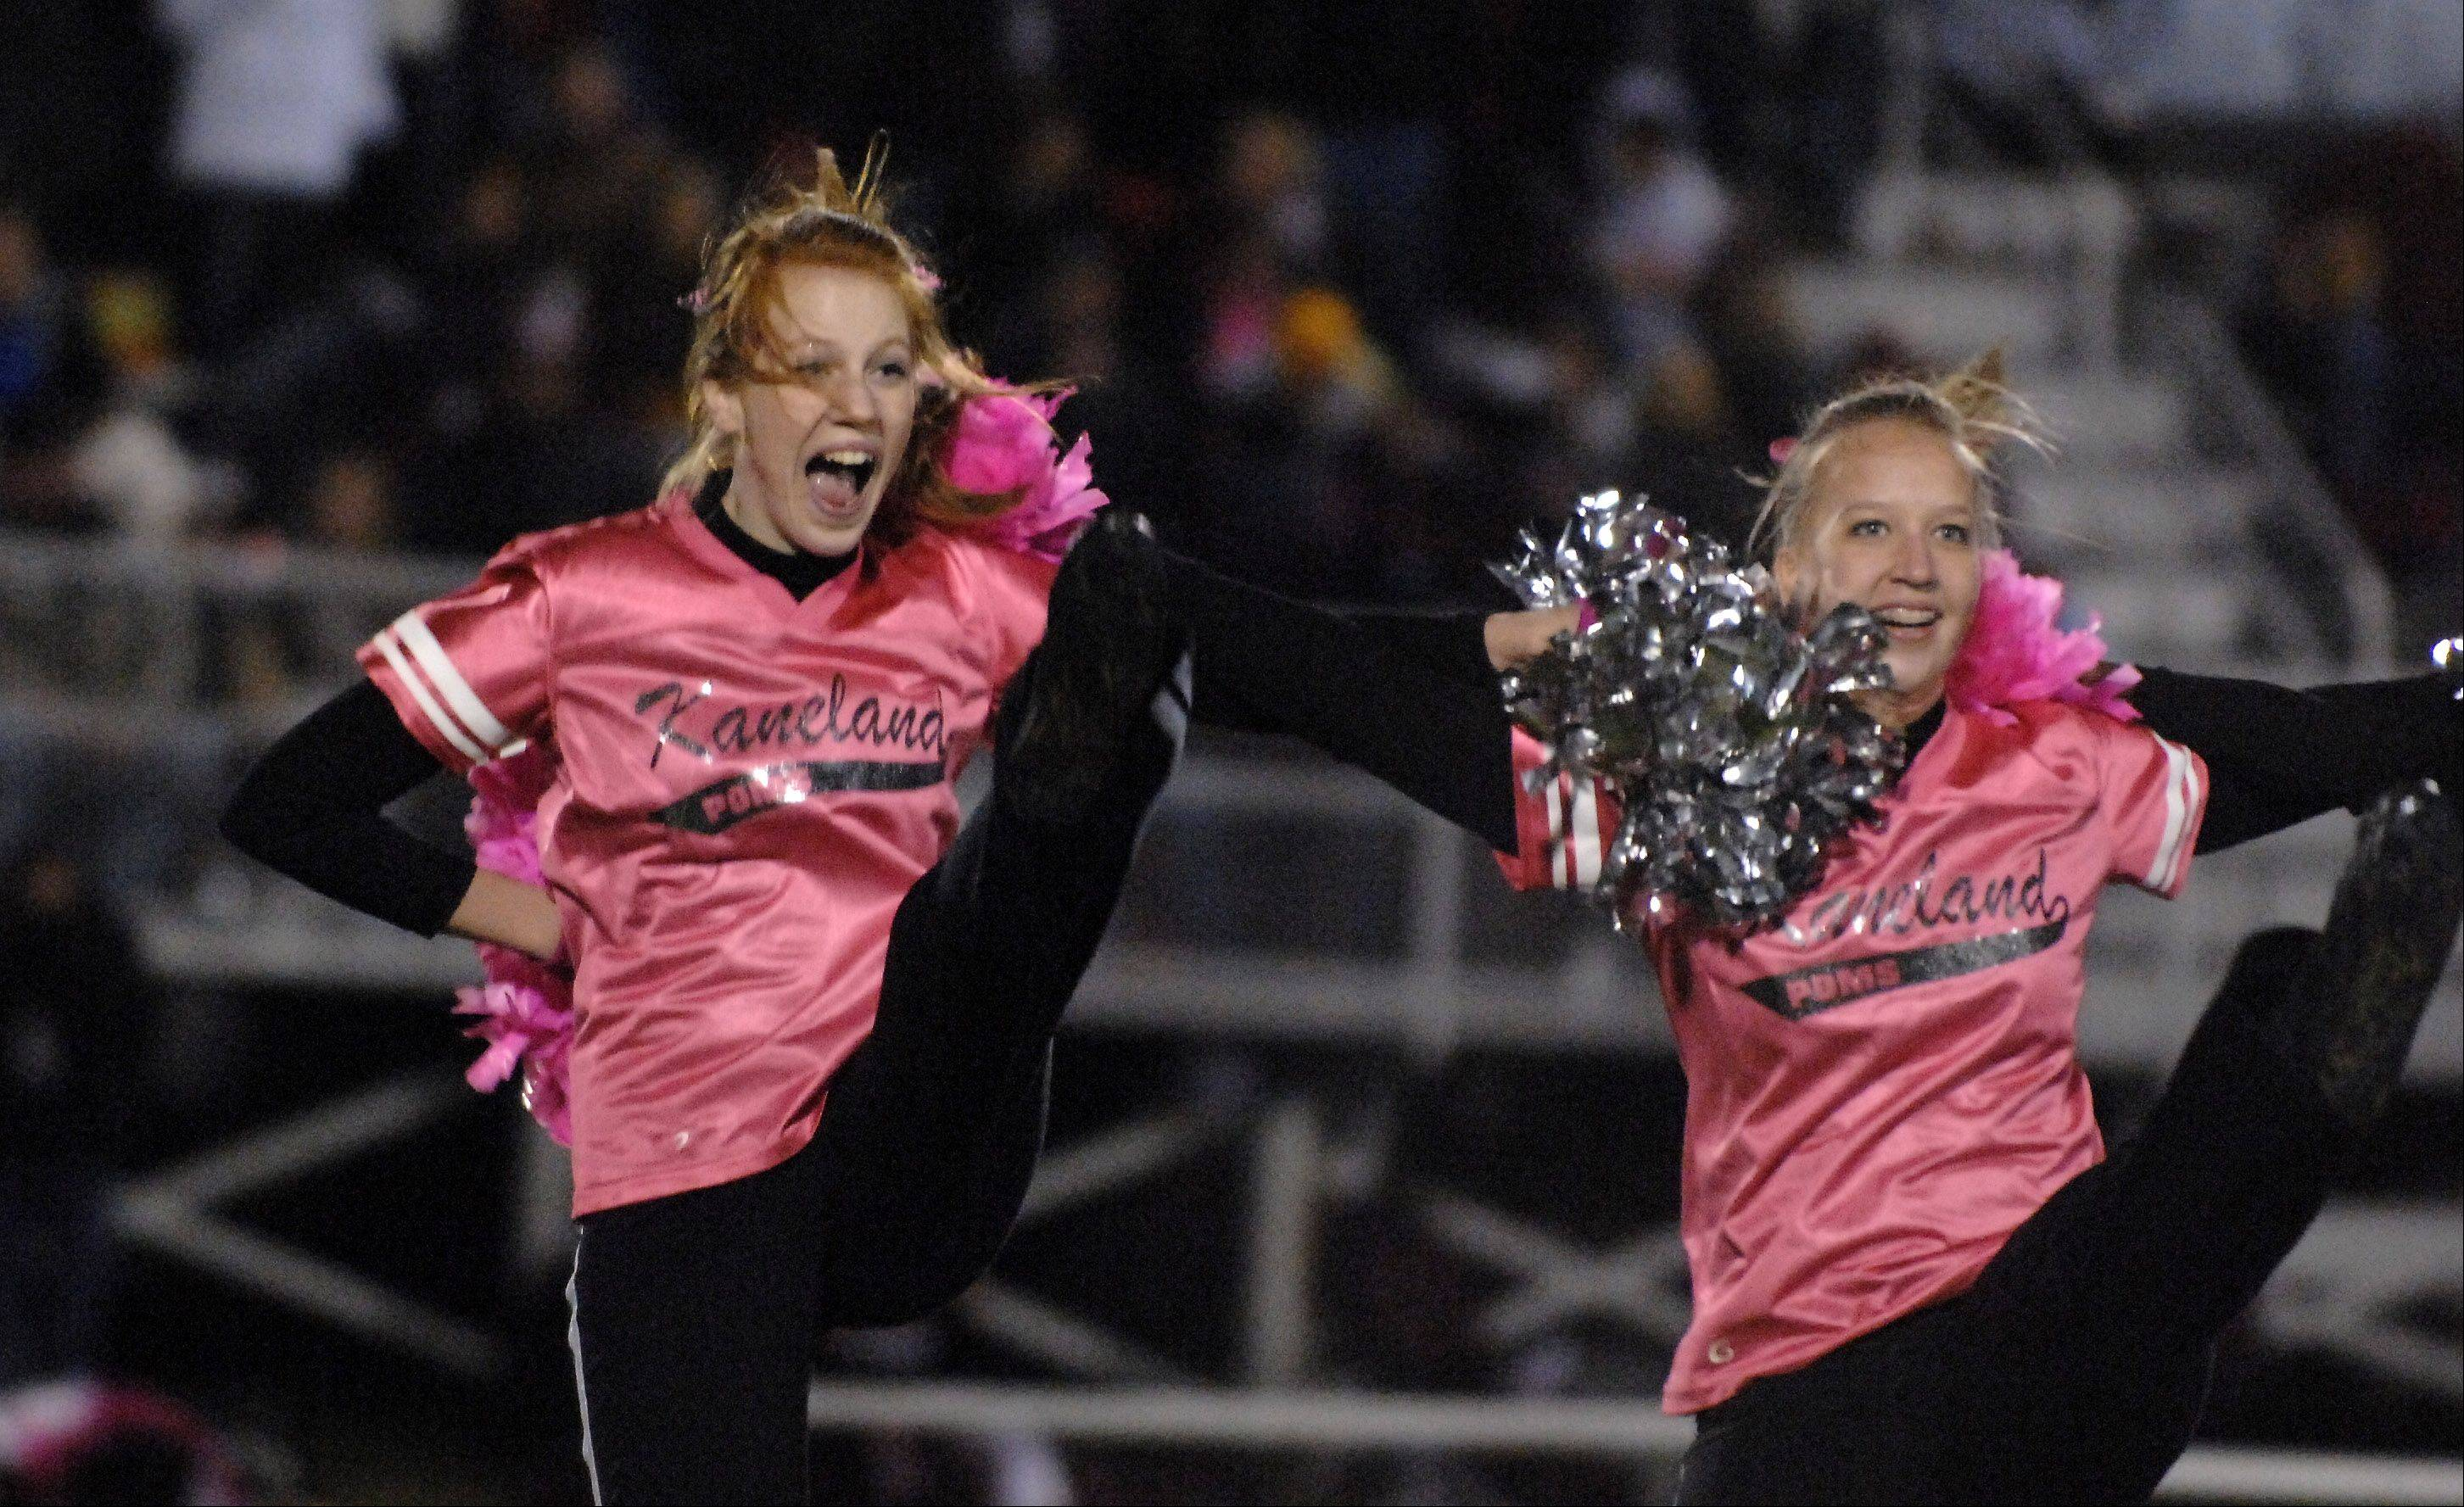 Week Nine - Images from the Morris vs. Kaneland football game Friday, October 19, 2012.